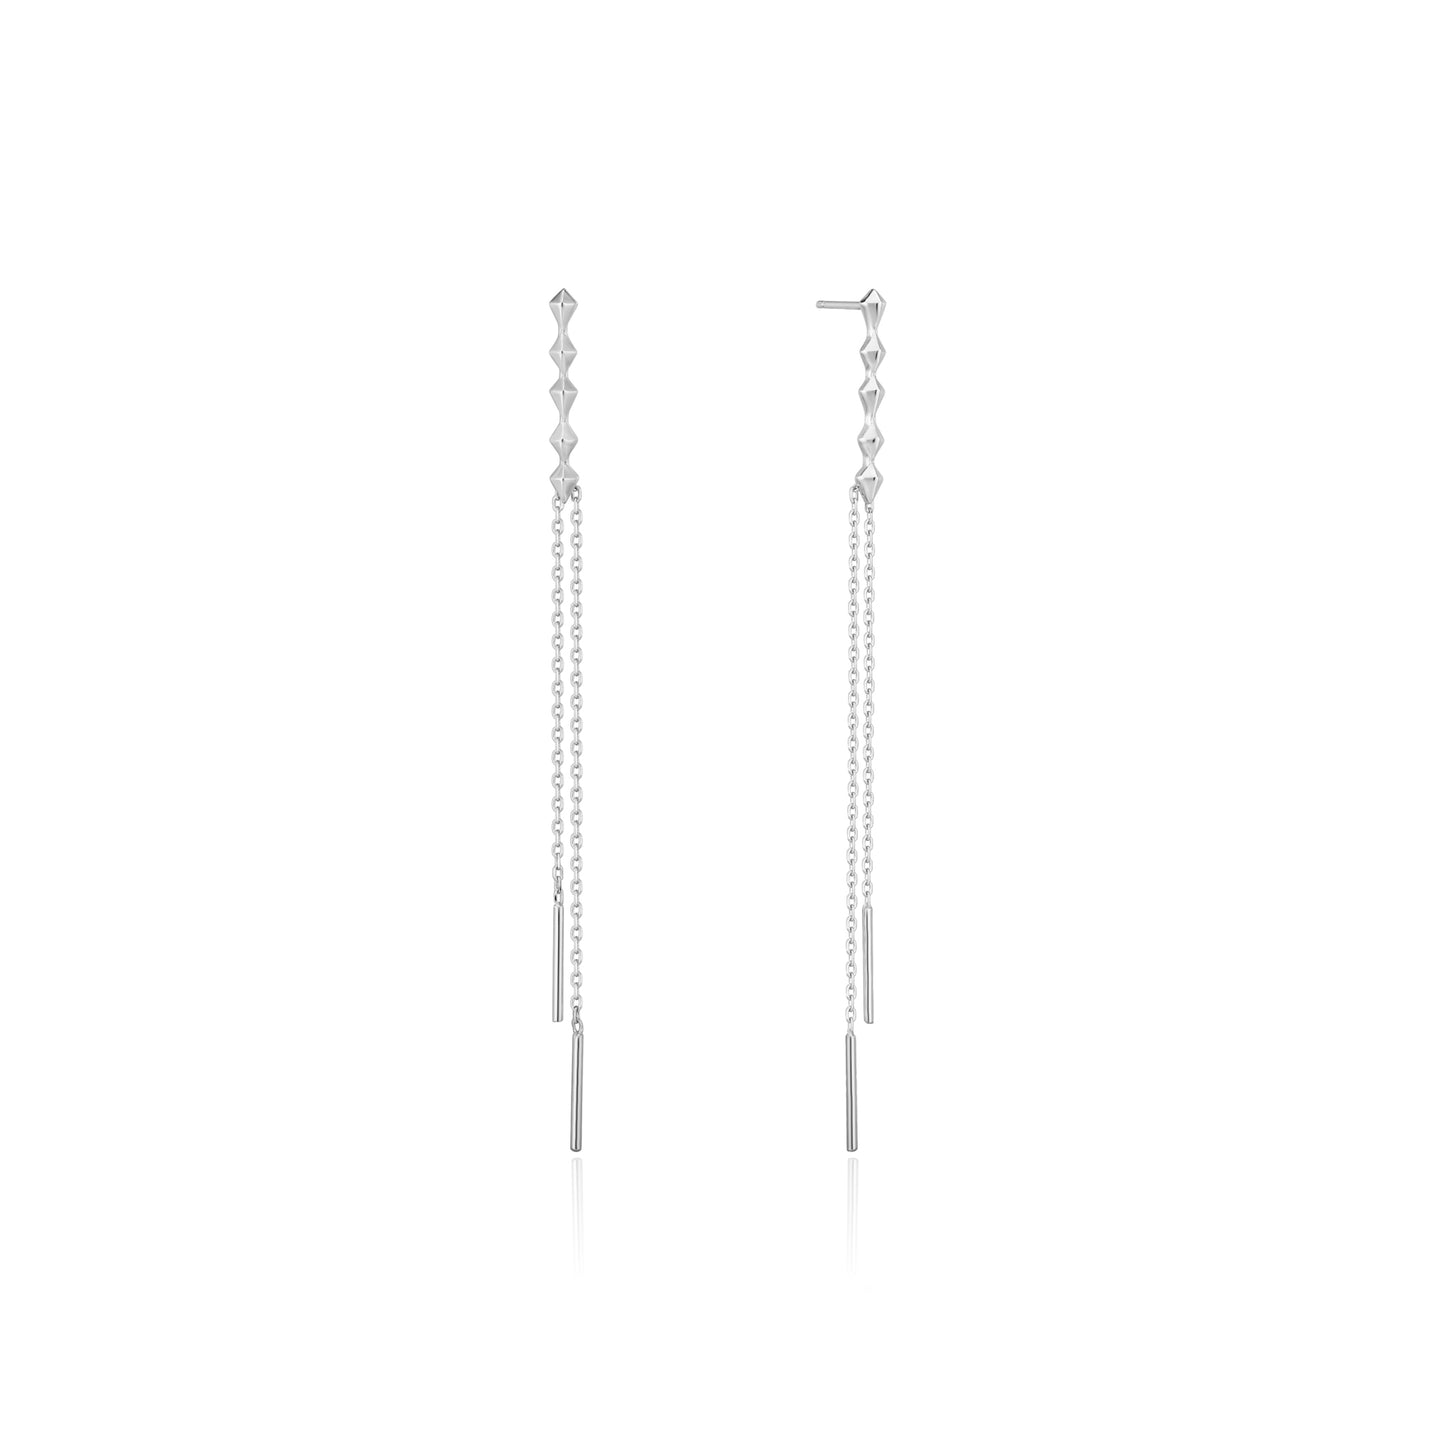 Silver Spike Double Drop Earrings E025-01H